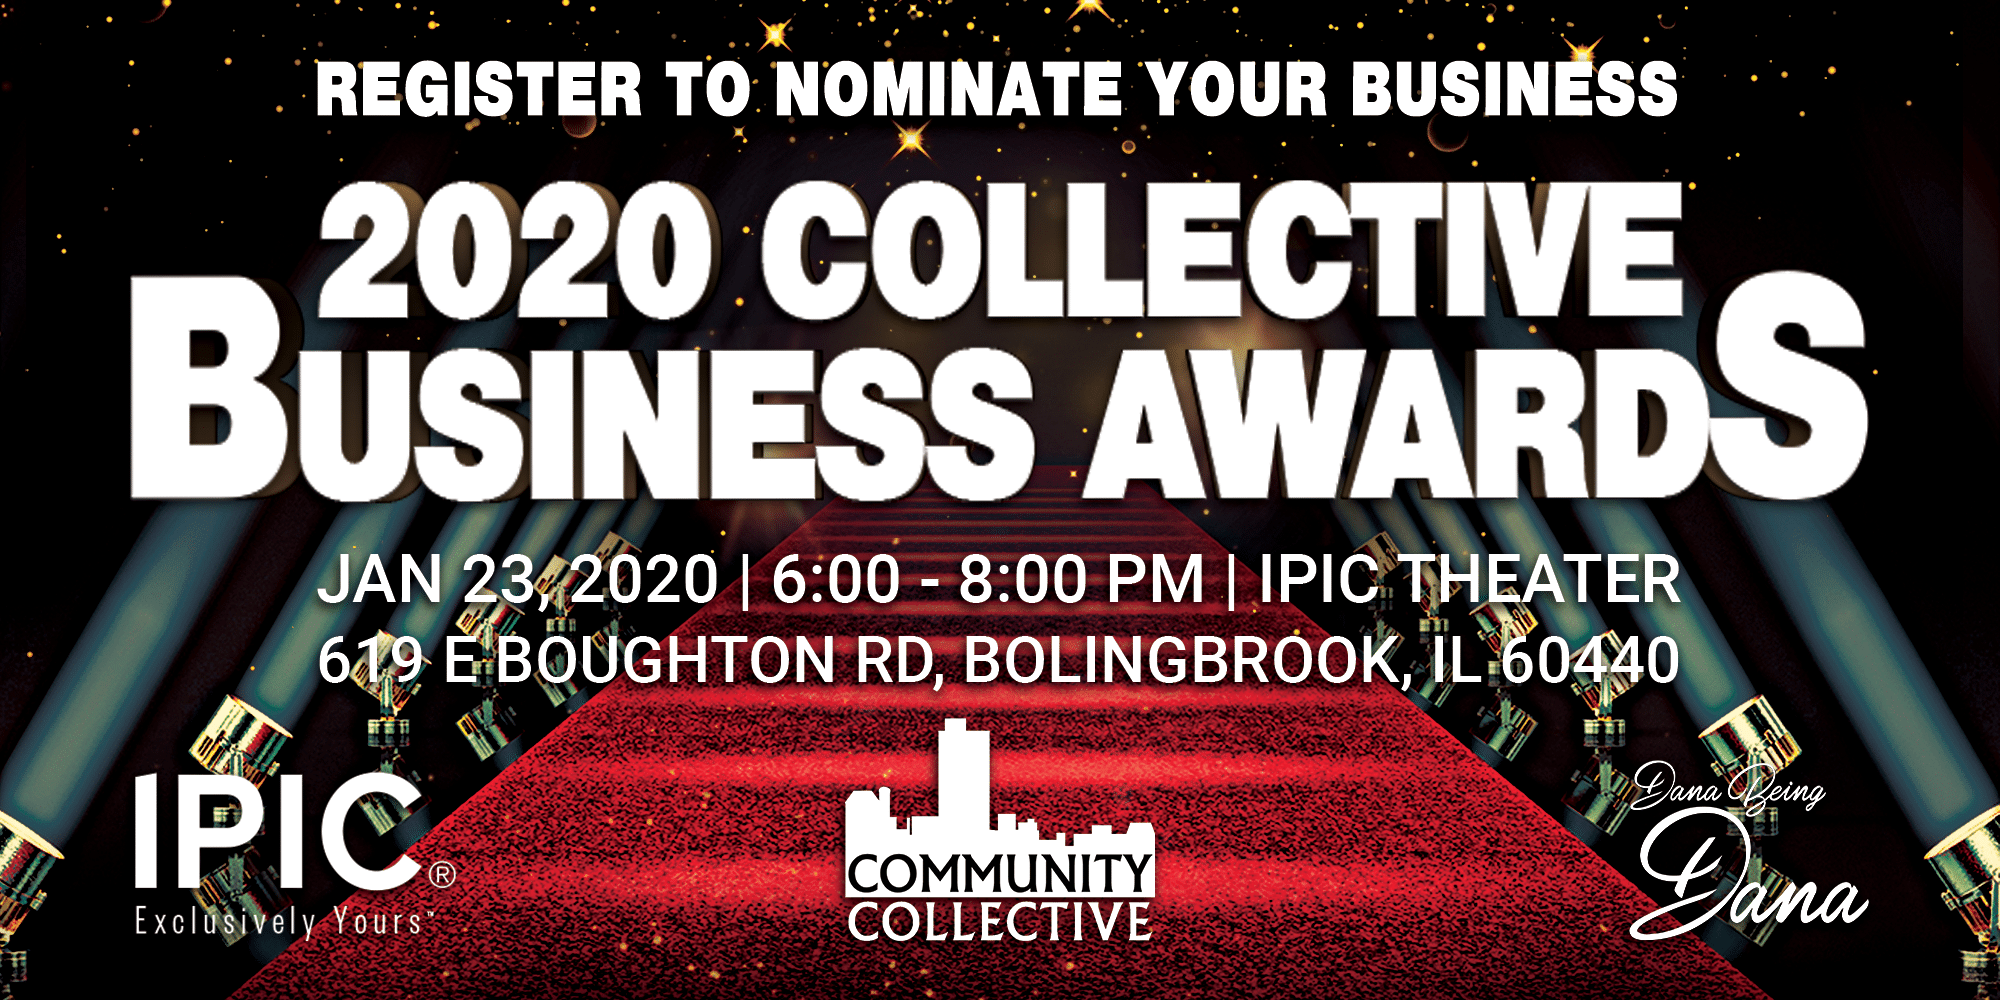 2020 Collective Business Awards